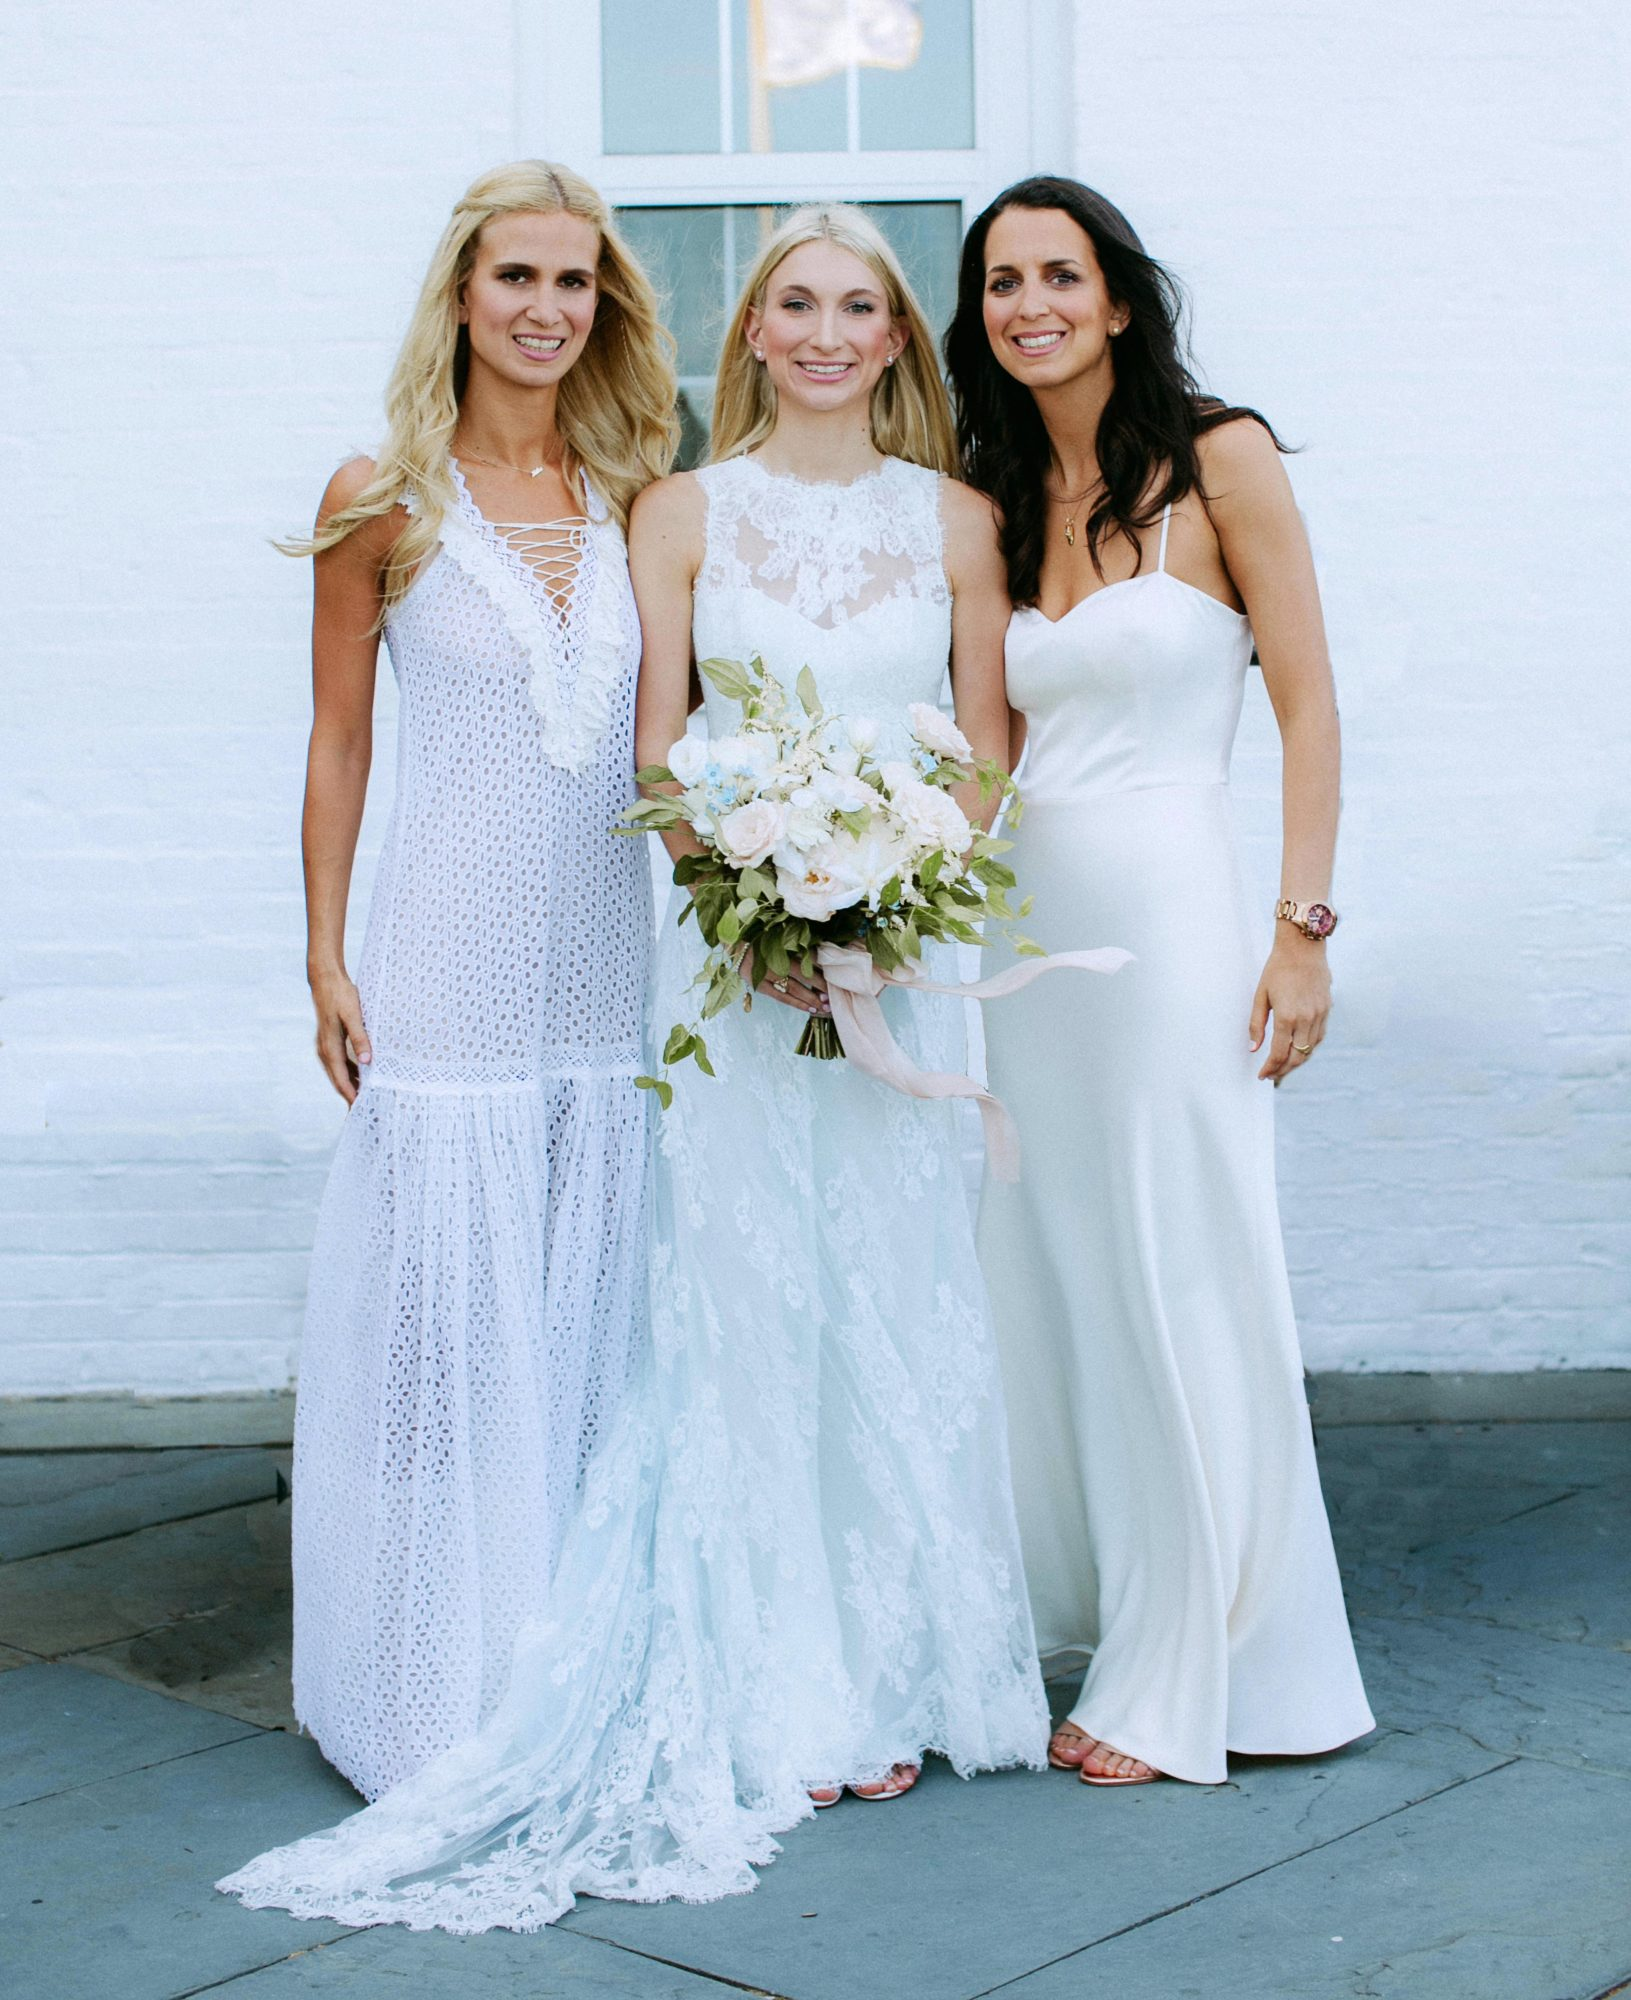 Casual White Bridesmaids' Dresses